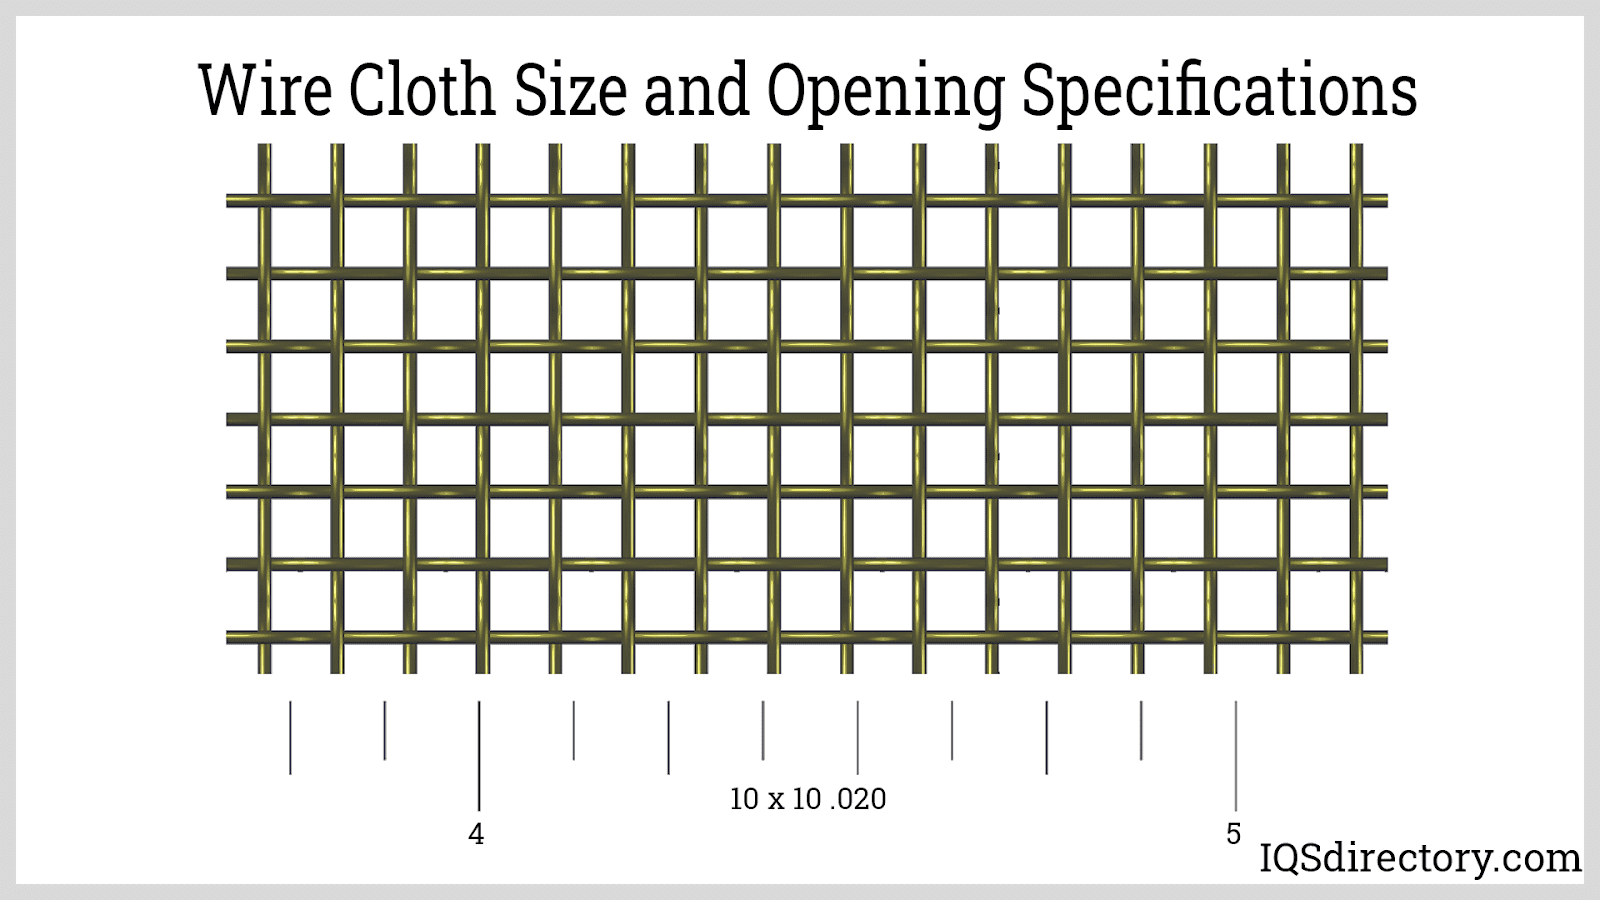 Wire Cloth Size and Opening Specifications